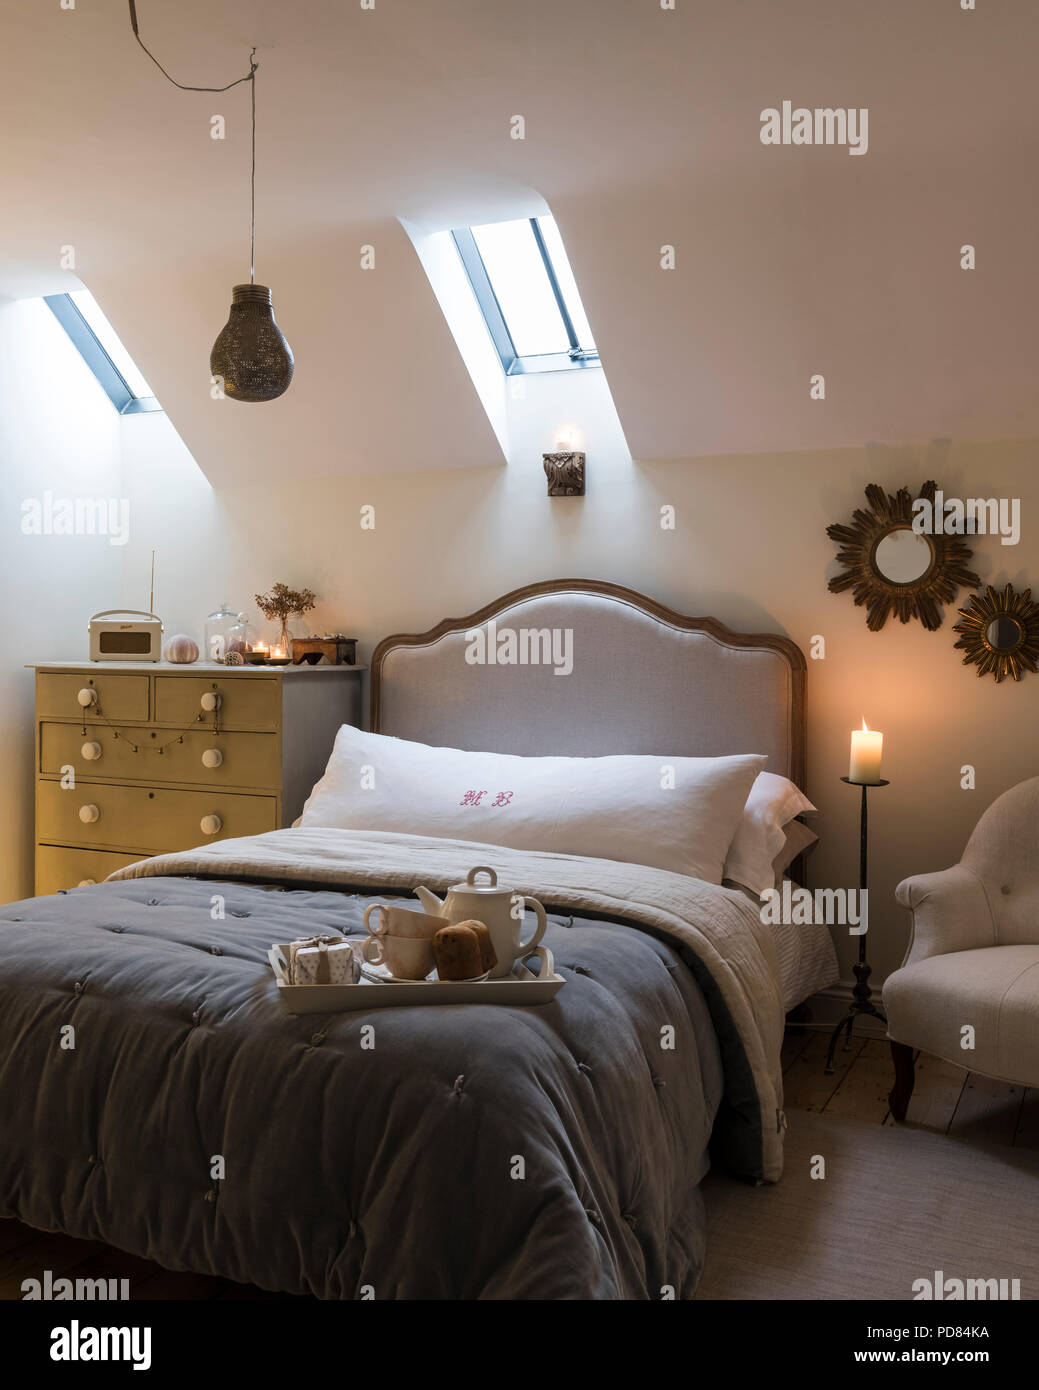 Candle Light Bedroom High Resolution Stock Photography And Images Alamy